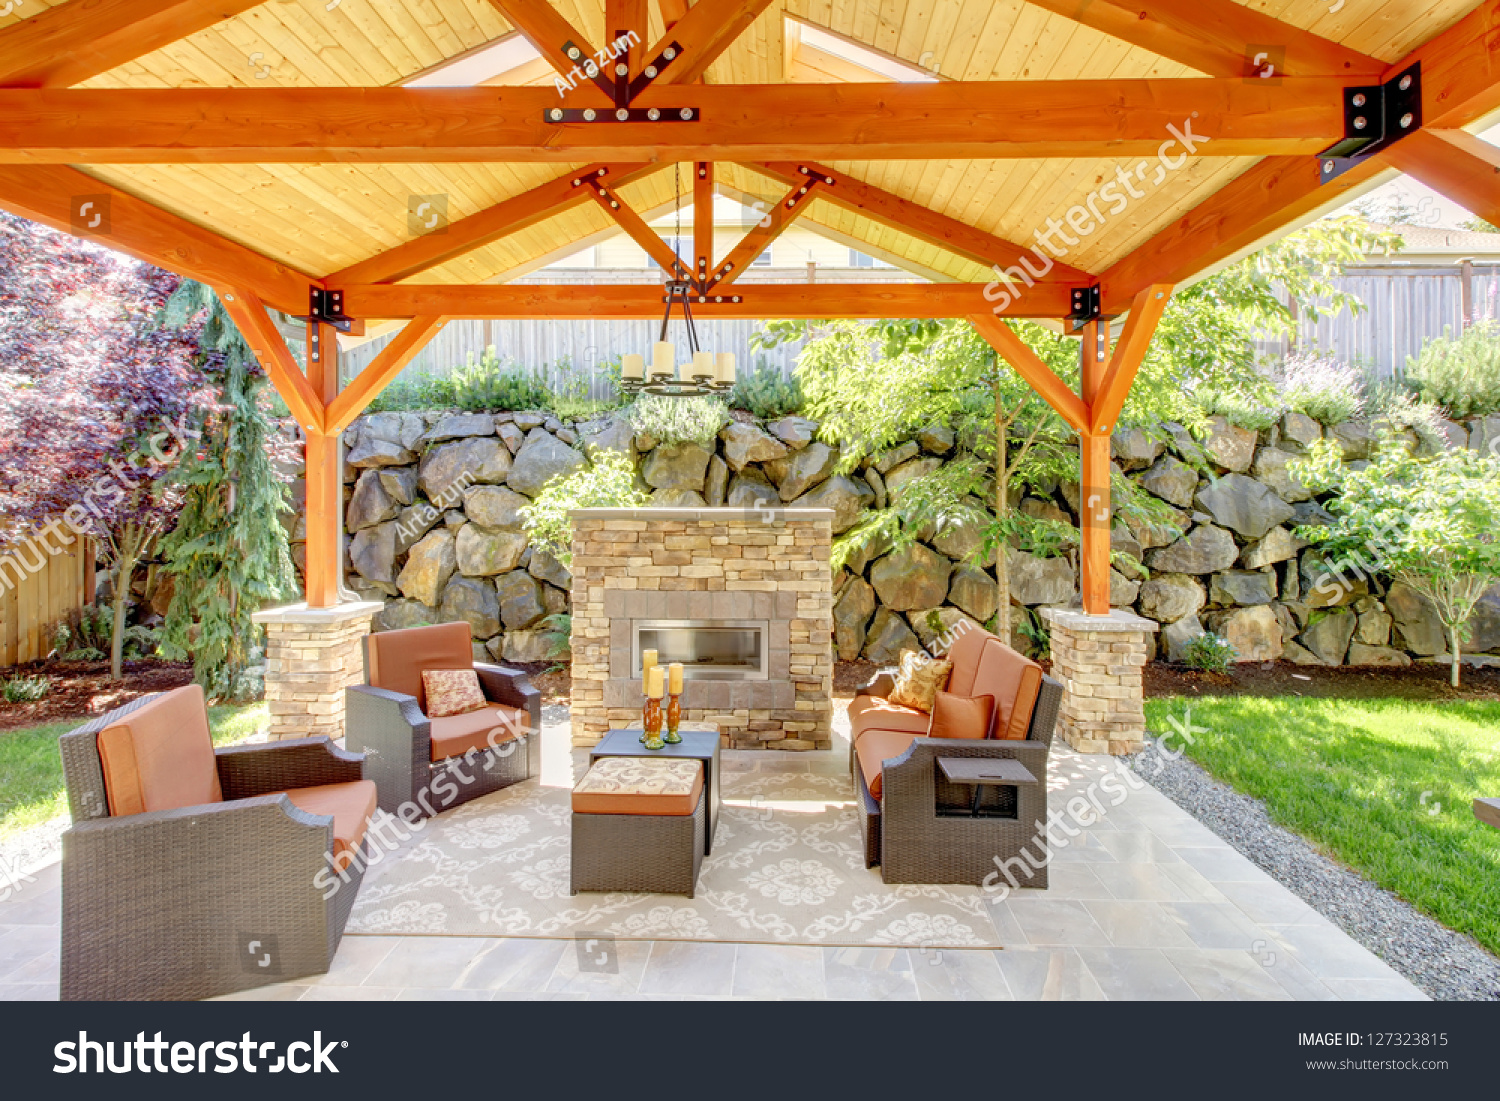 Exterior Covered Patio With Fireplace And Furniture. Wood Ceiling With Skylights. Stock Photo 127323815 : Shutterstock